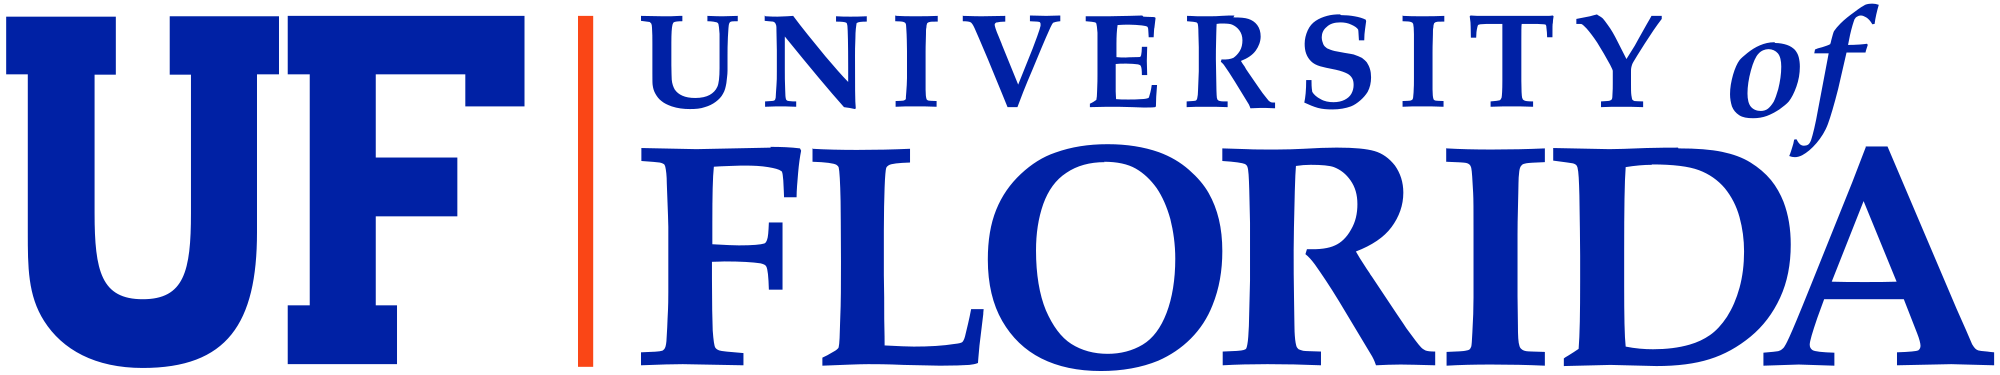 Uf logo png. Membership perks university of